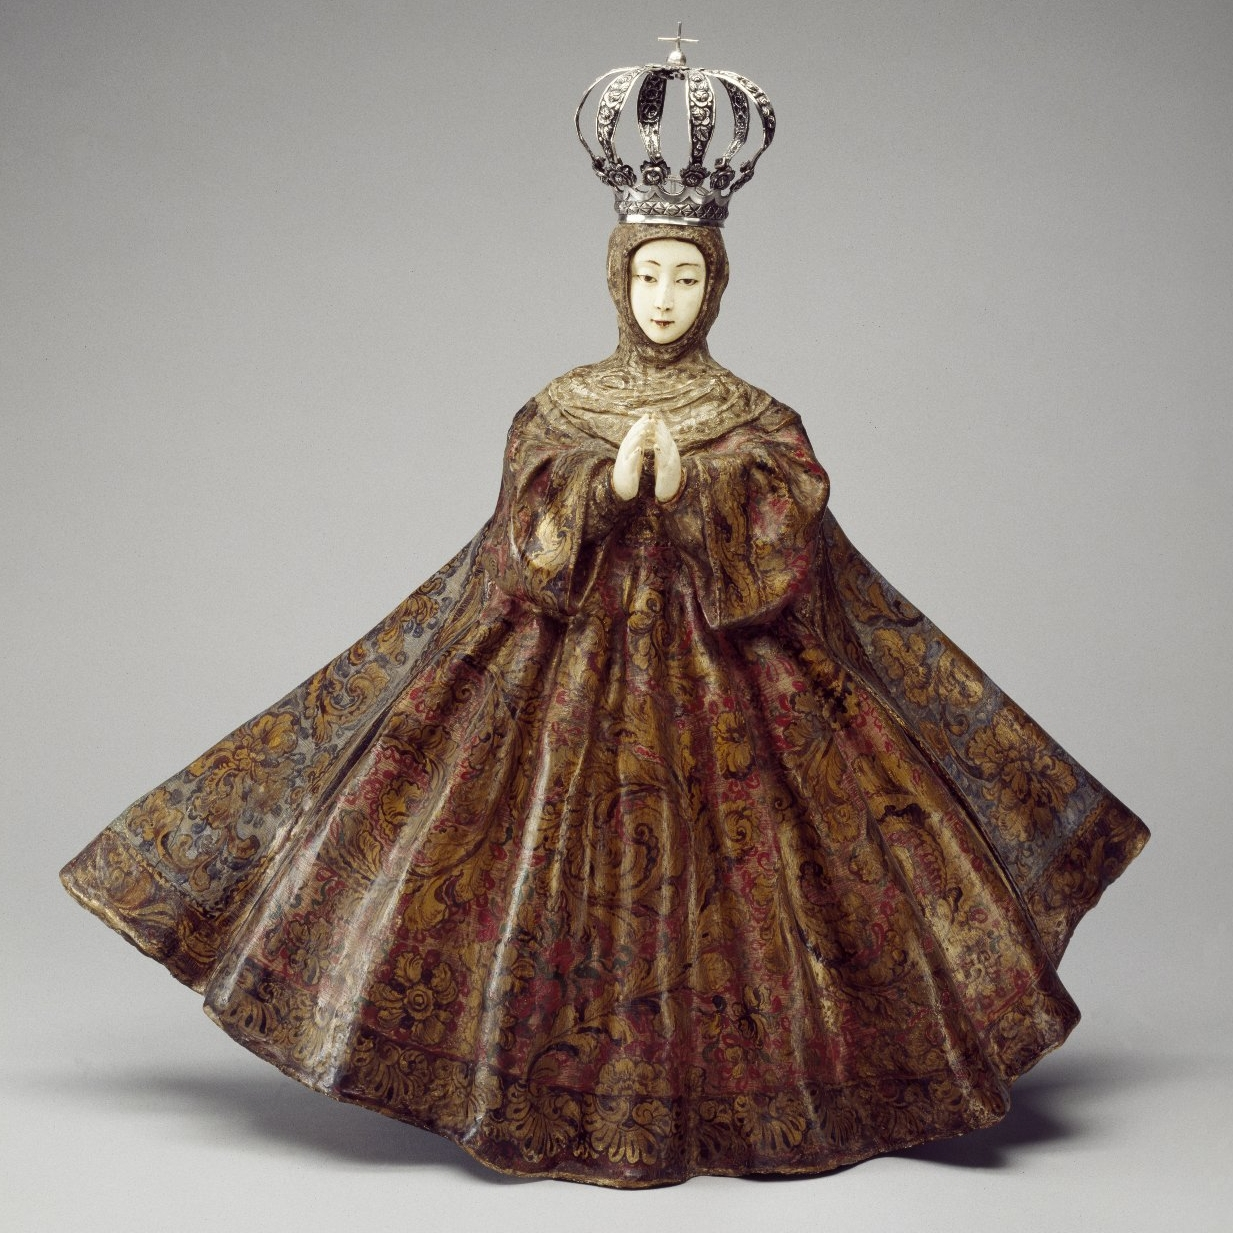 <p>Unknown artist (Guatemala, Central America). <i>Virgin of the Immaculate Conception</i>, 18th century. Wood, ivory, pigment, gilding, gessoed cloth, silver, sculpture: 25<sup>7</sup>&frasl;<sub>8</sub> x 27 &times; 10<sup>1</sup>&frasl;<sub>4</sub> in. (65.7 &times; 68.6 &times; 26 cm), base: 9 1/4 &times; 14 1/2 &times; 23 in. (23.5 &times; 36.8 &times; 58.4 cm). Brooklyn Museum, Frank L. Babbott Fund, 42.384</p>